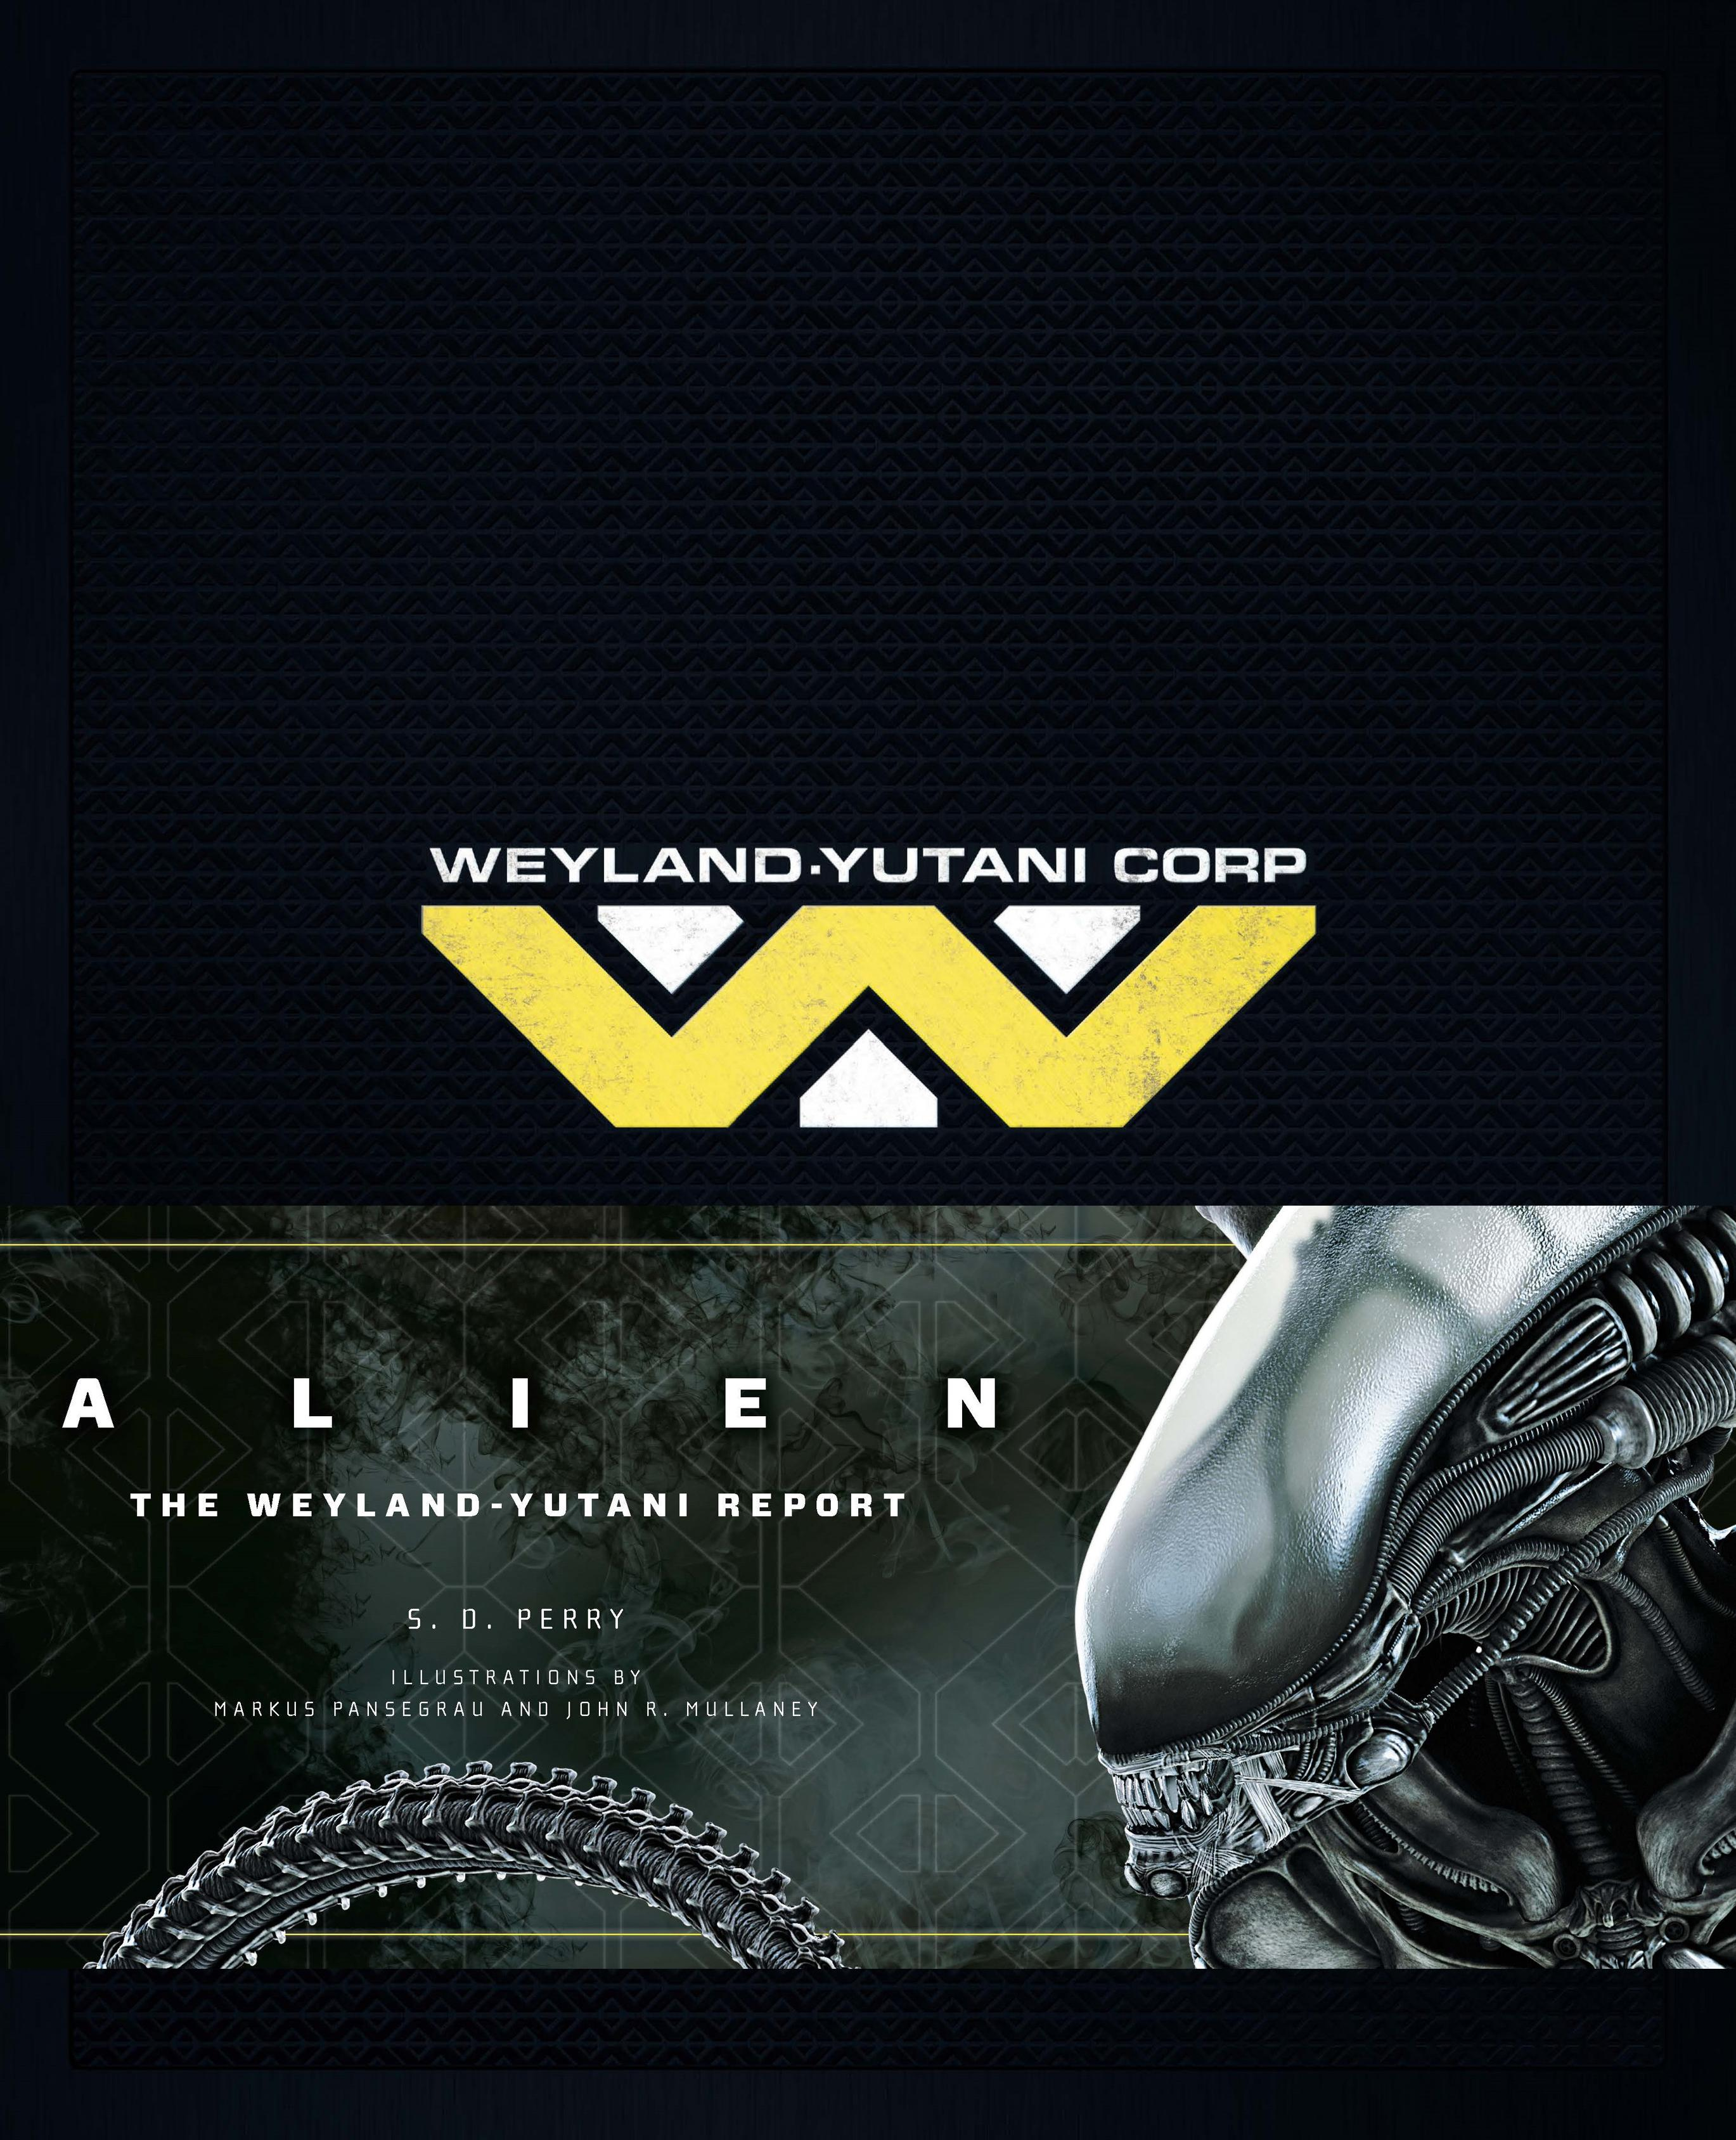 Alien Weyland-Yutani Report bruce bridgeman the biology of behavior and mind